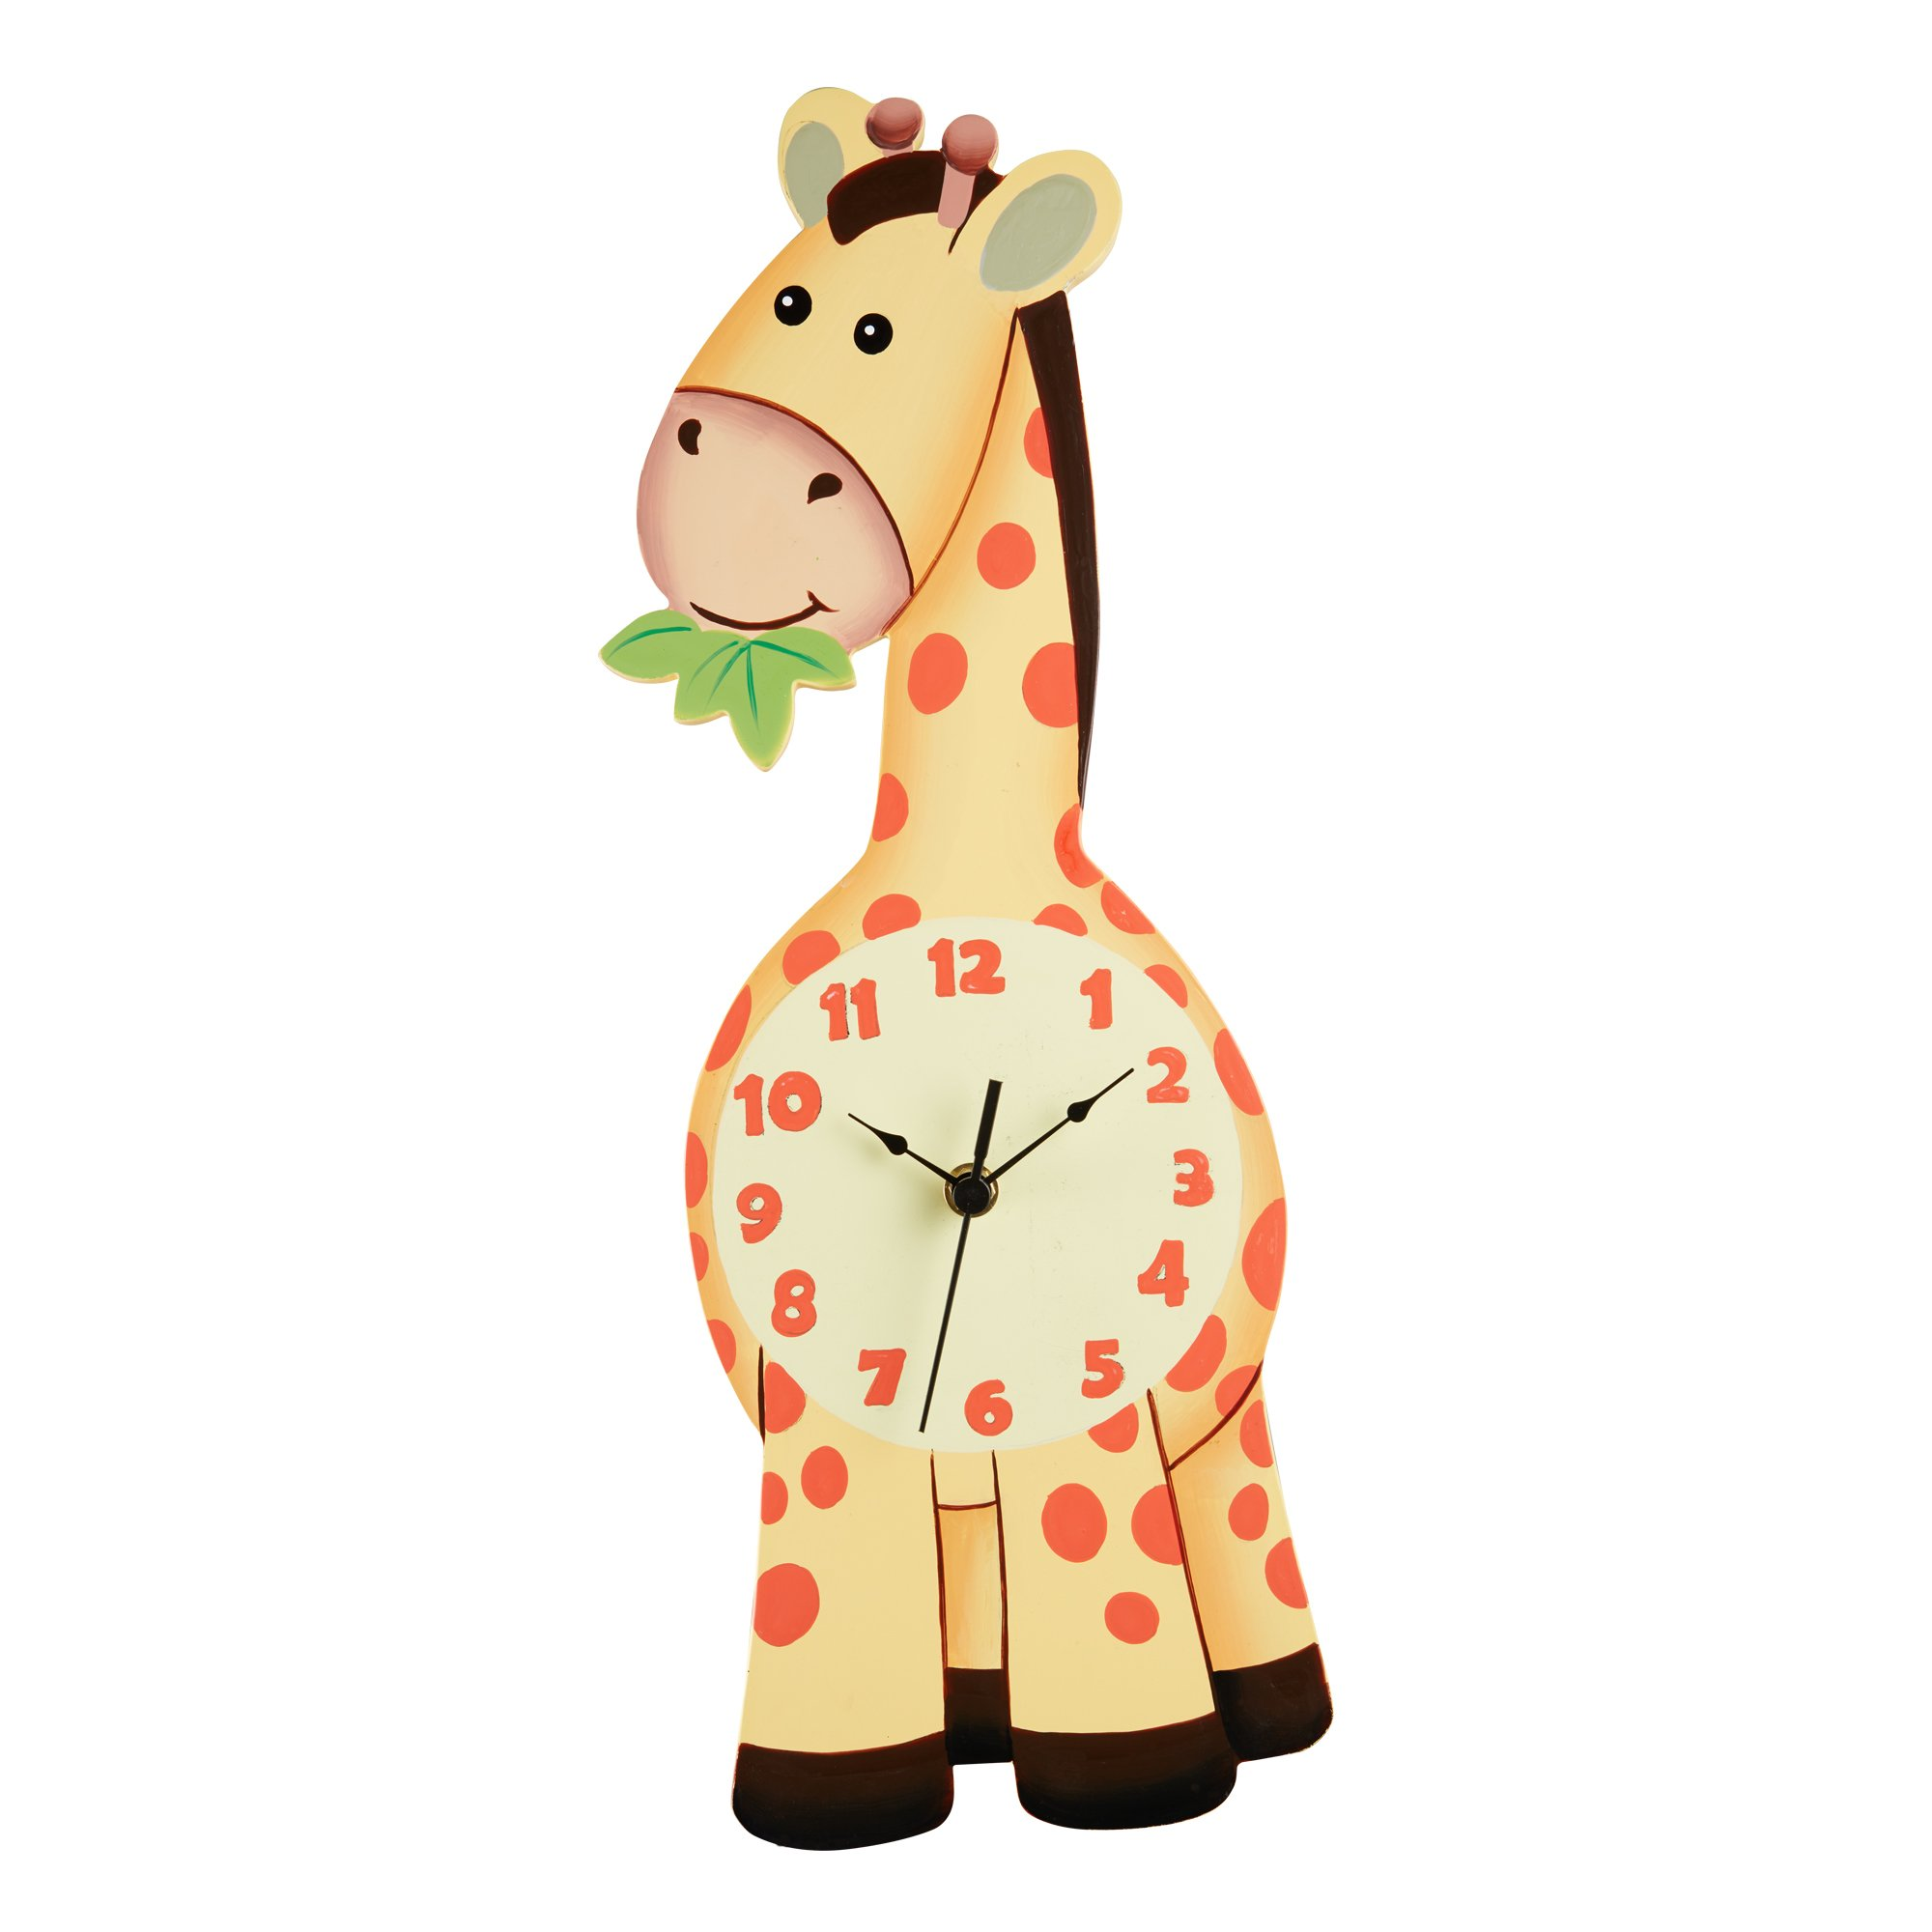 Fantasy Fields - Sunny Safari Giraffe Wall Clock, Silent, Decorative Animal Design for Nursery Kids Bedroom, with Eco-Friendly and Non-Toxic Water-Based Paints, Yellow